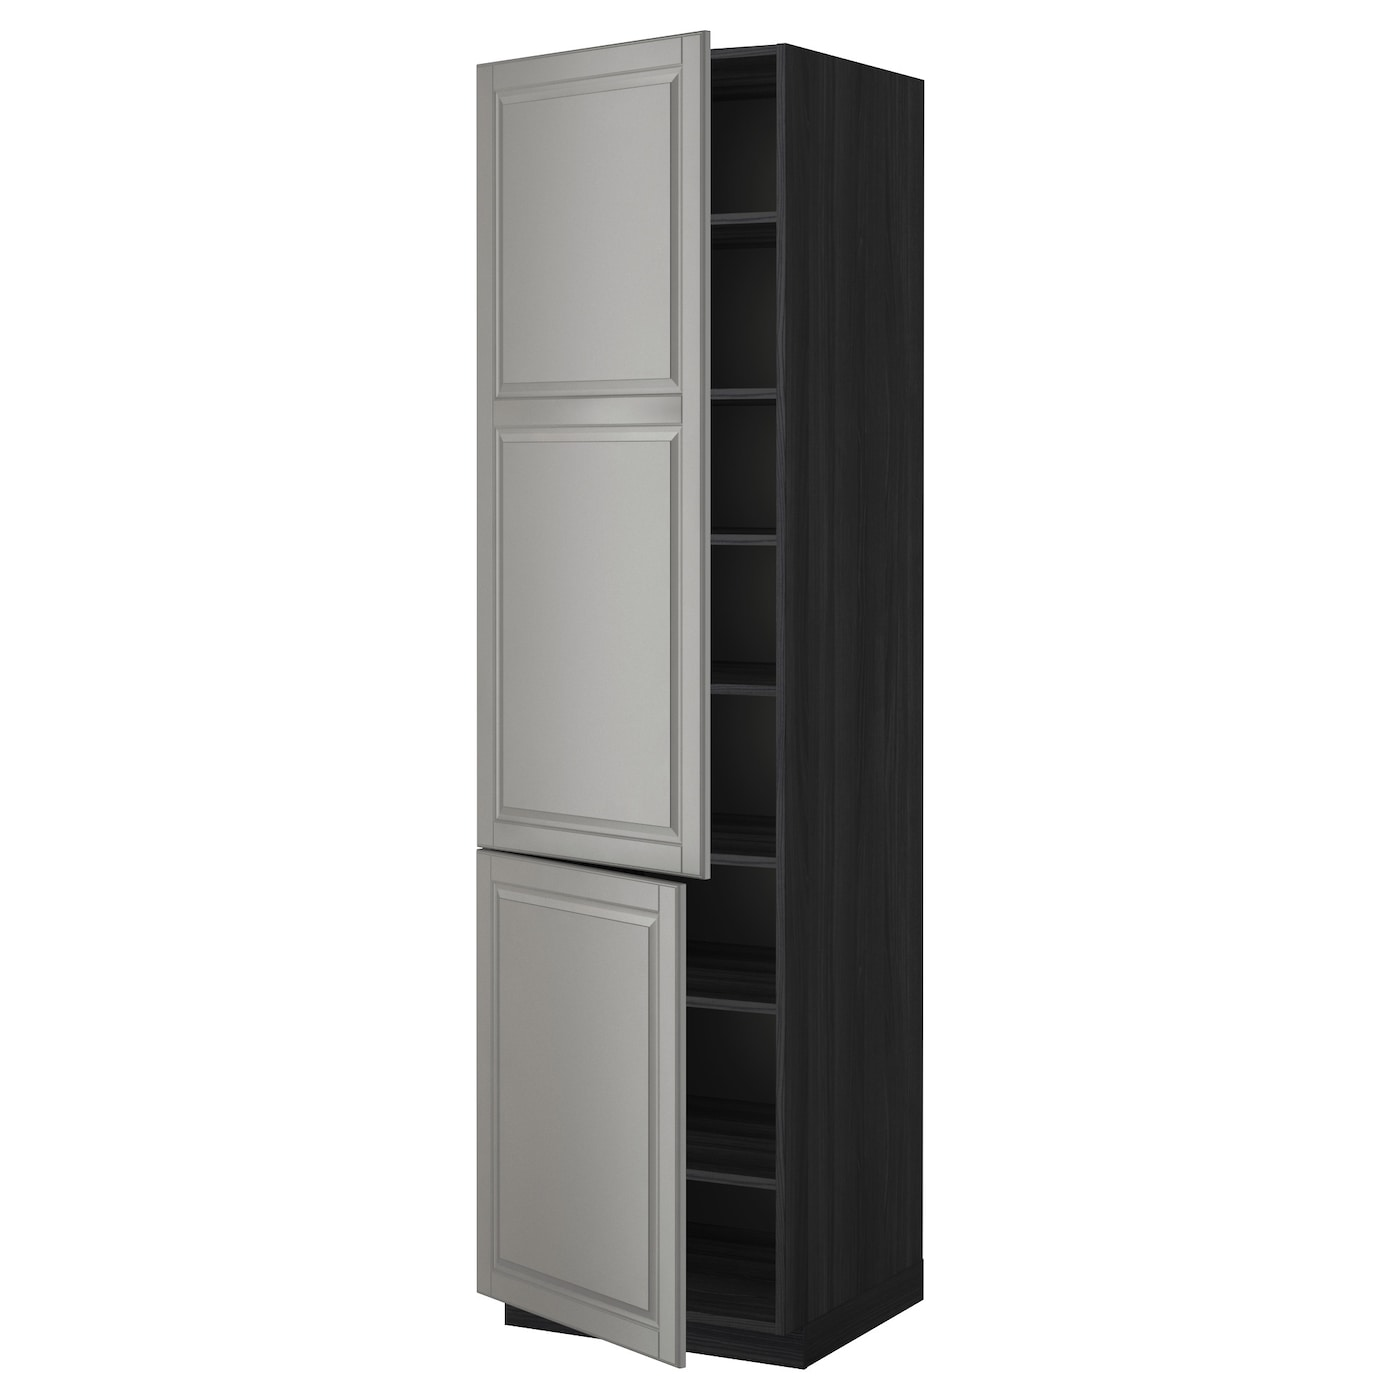 Ikea Kitchen Black Cabinets: METOD High Cabinet With Shelves/2 Doors Black/bodbyn Grey 60x60x220 Cm